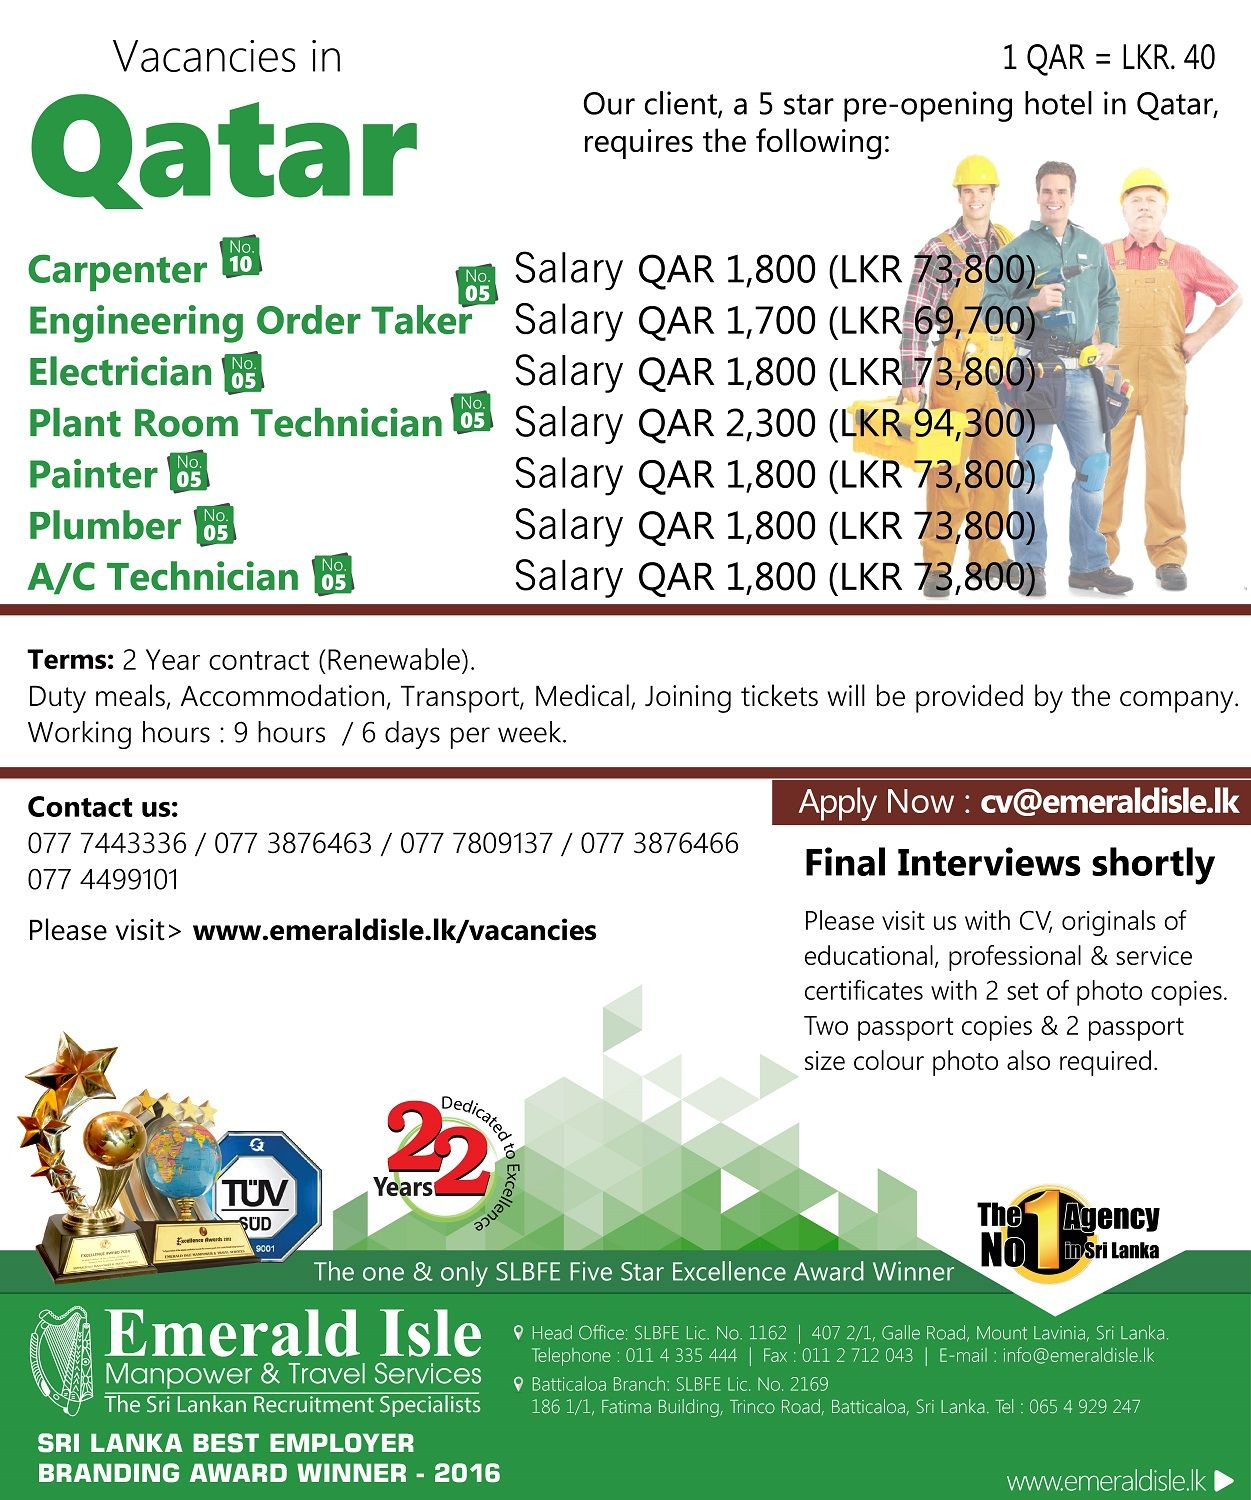 Pin By Emerald Isle Manpower Travel On Foreign Vacancies Qatar Room With Plants Pre Opening Electrician